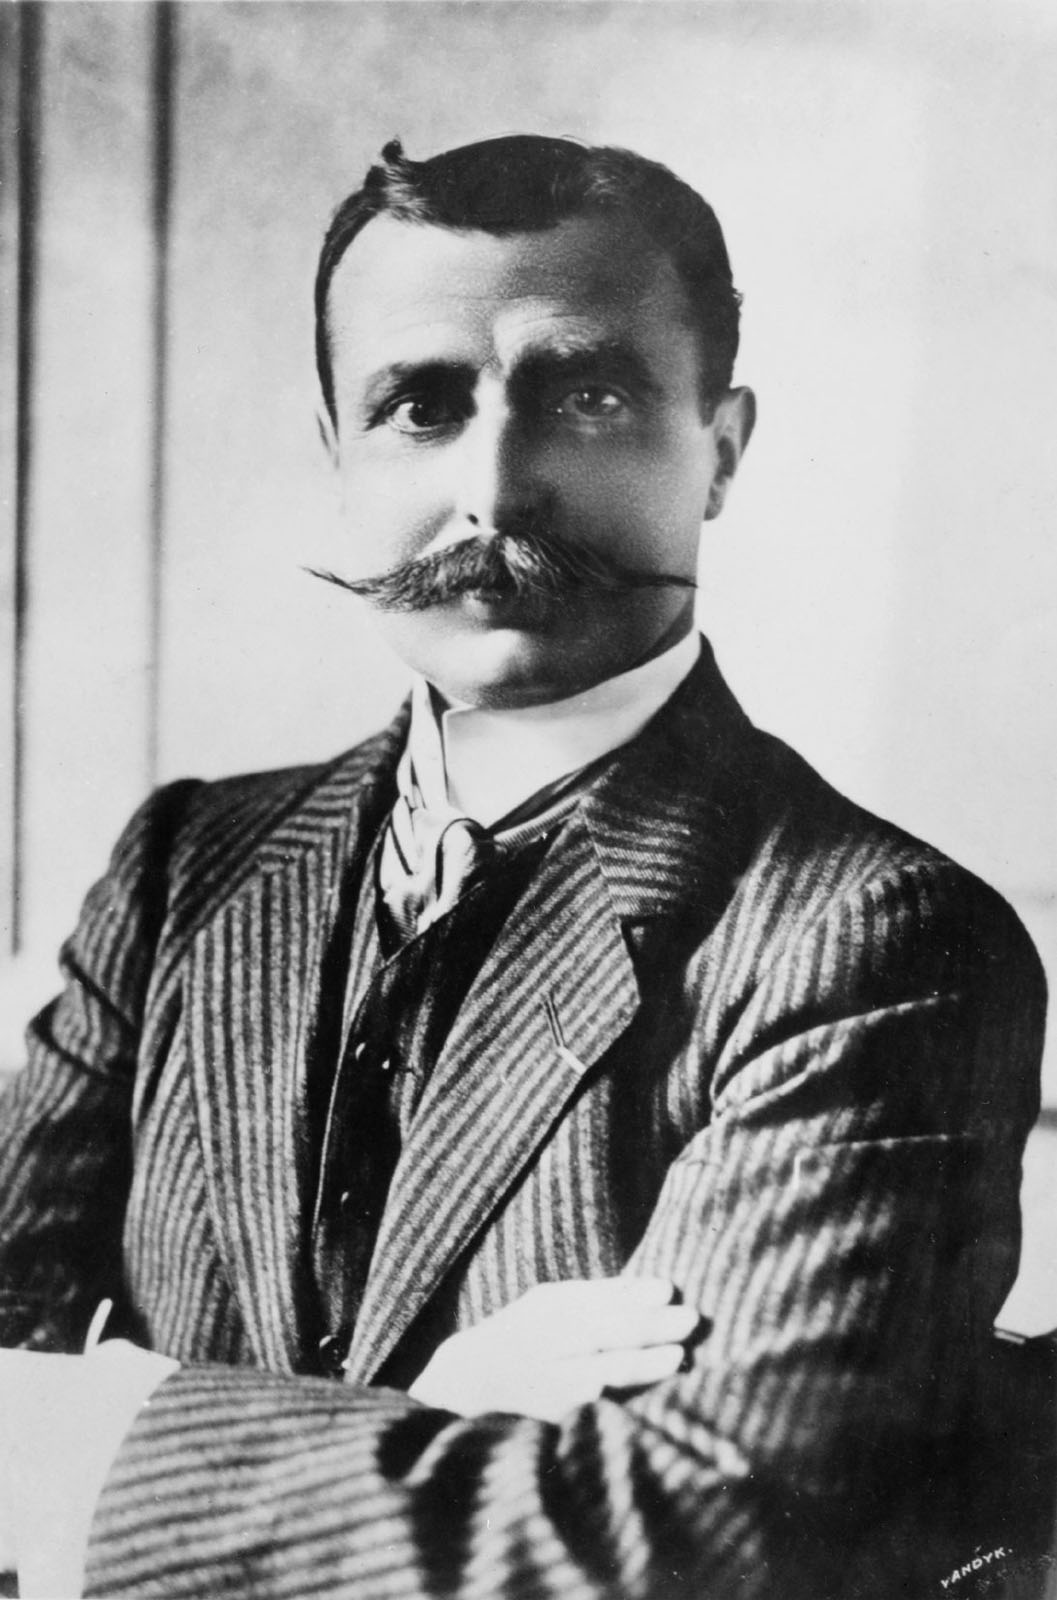 Louis Blériot (1872-1936), the first man to fly the English Channel. Photo taken between 1906 and 1916.